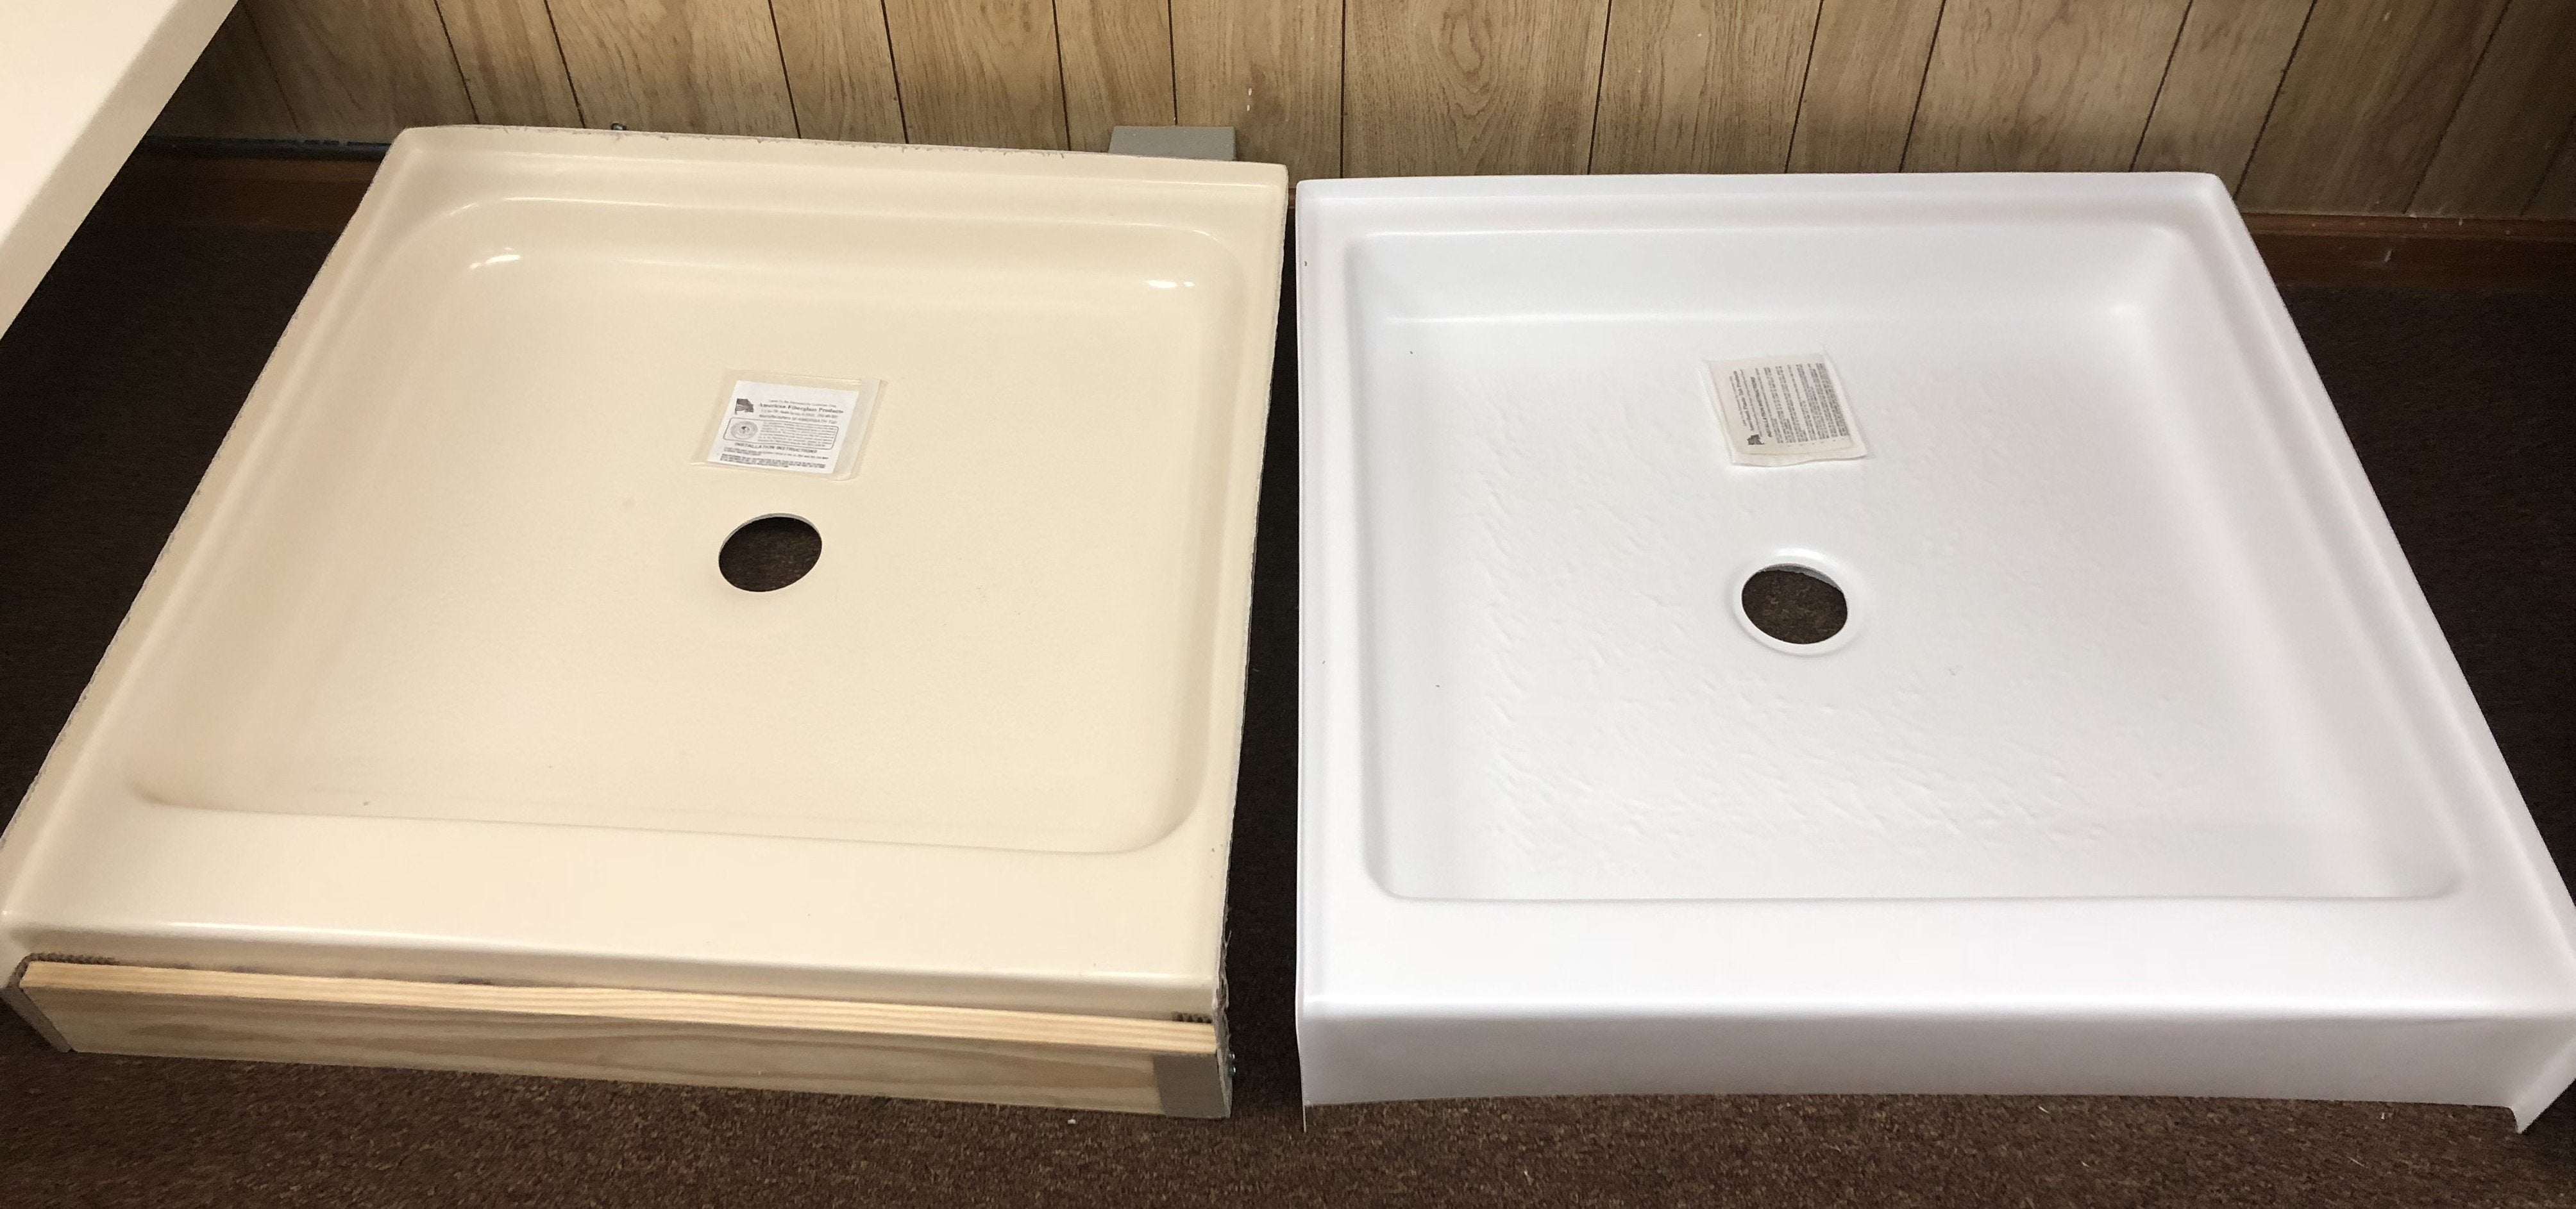 IMG_3686 Mobile Home Shower Bases on pans 24 inch wide, surrounds for, toilet stove, tub combo 54 27, stalls renovation, replacement kit, base for, door 20x62,